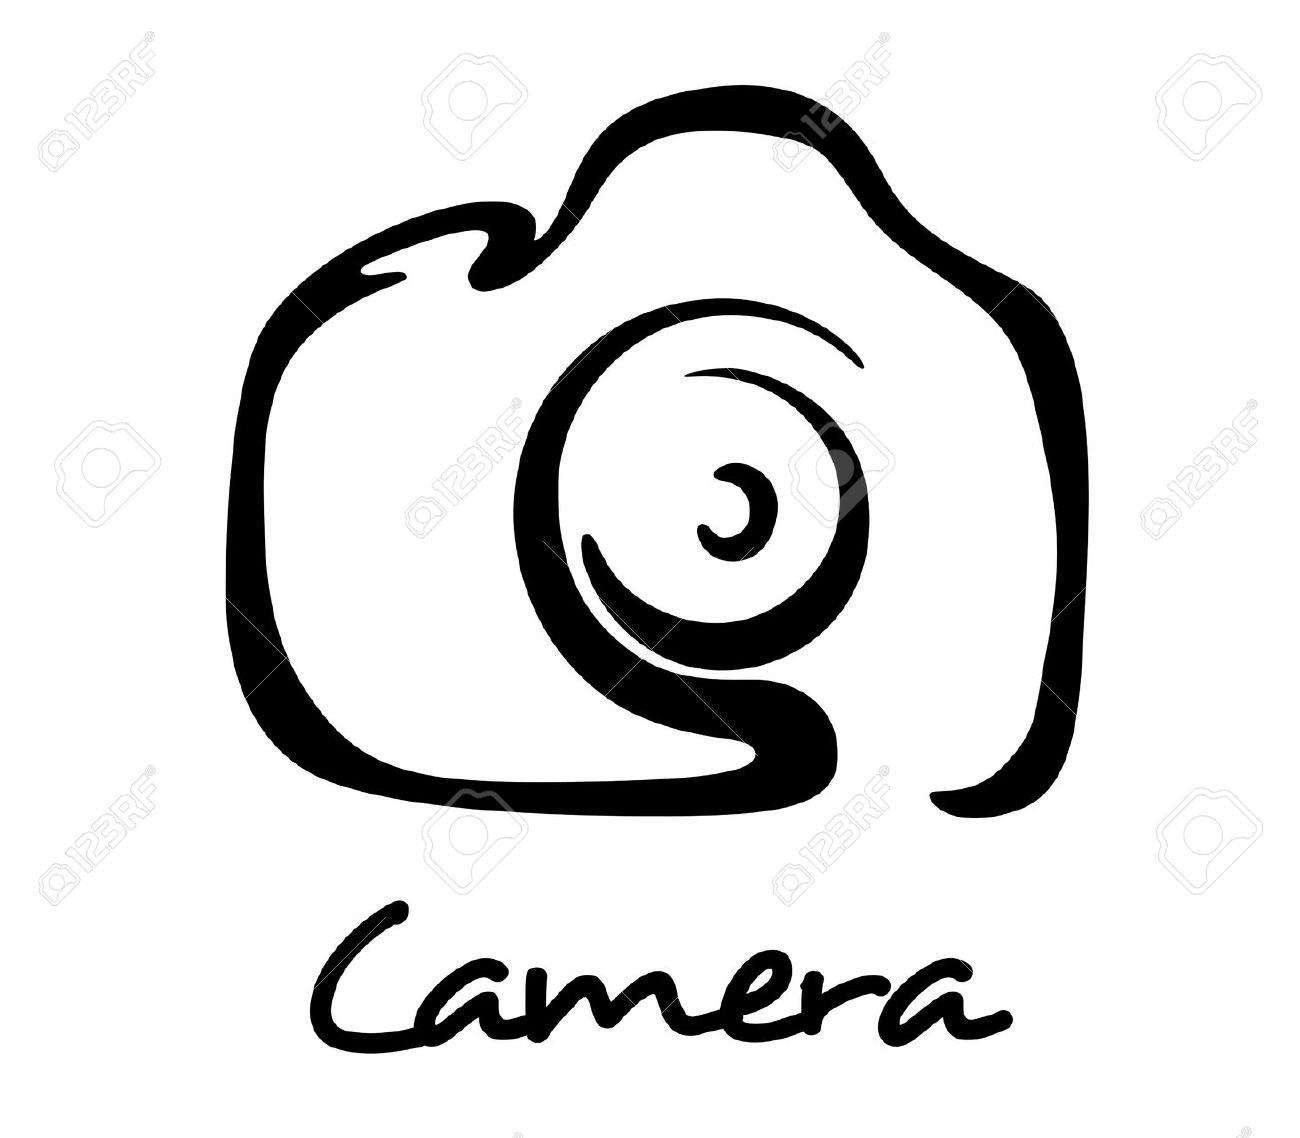 Camera Logo Png | Free download on ClipArtMag